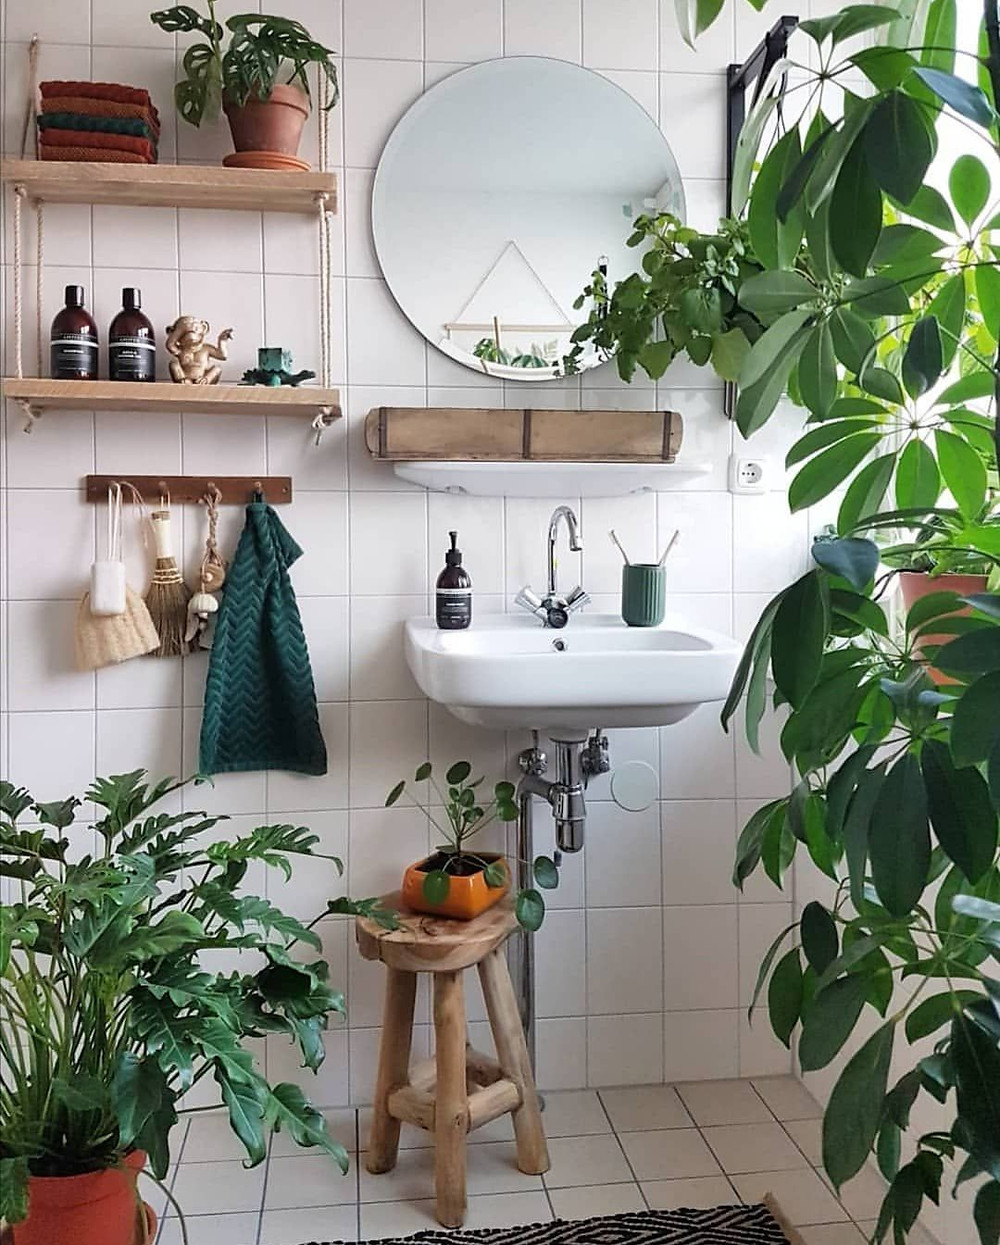 Incorporate plants into your bathroom and create a jungle.